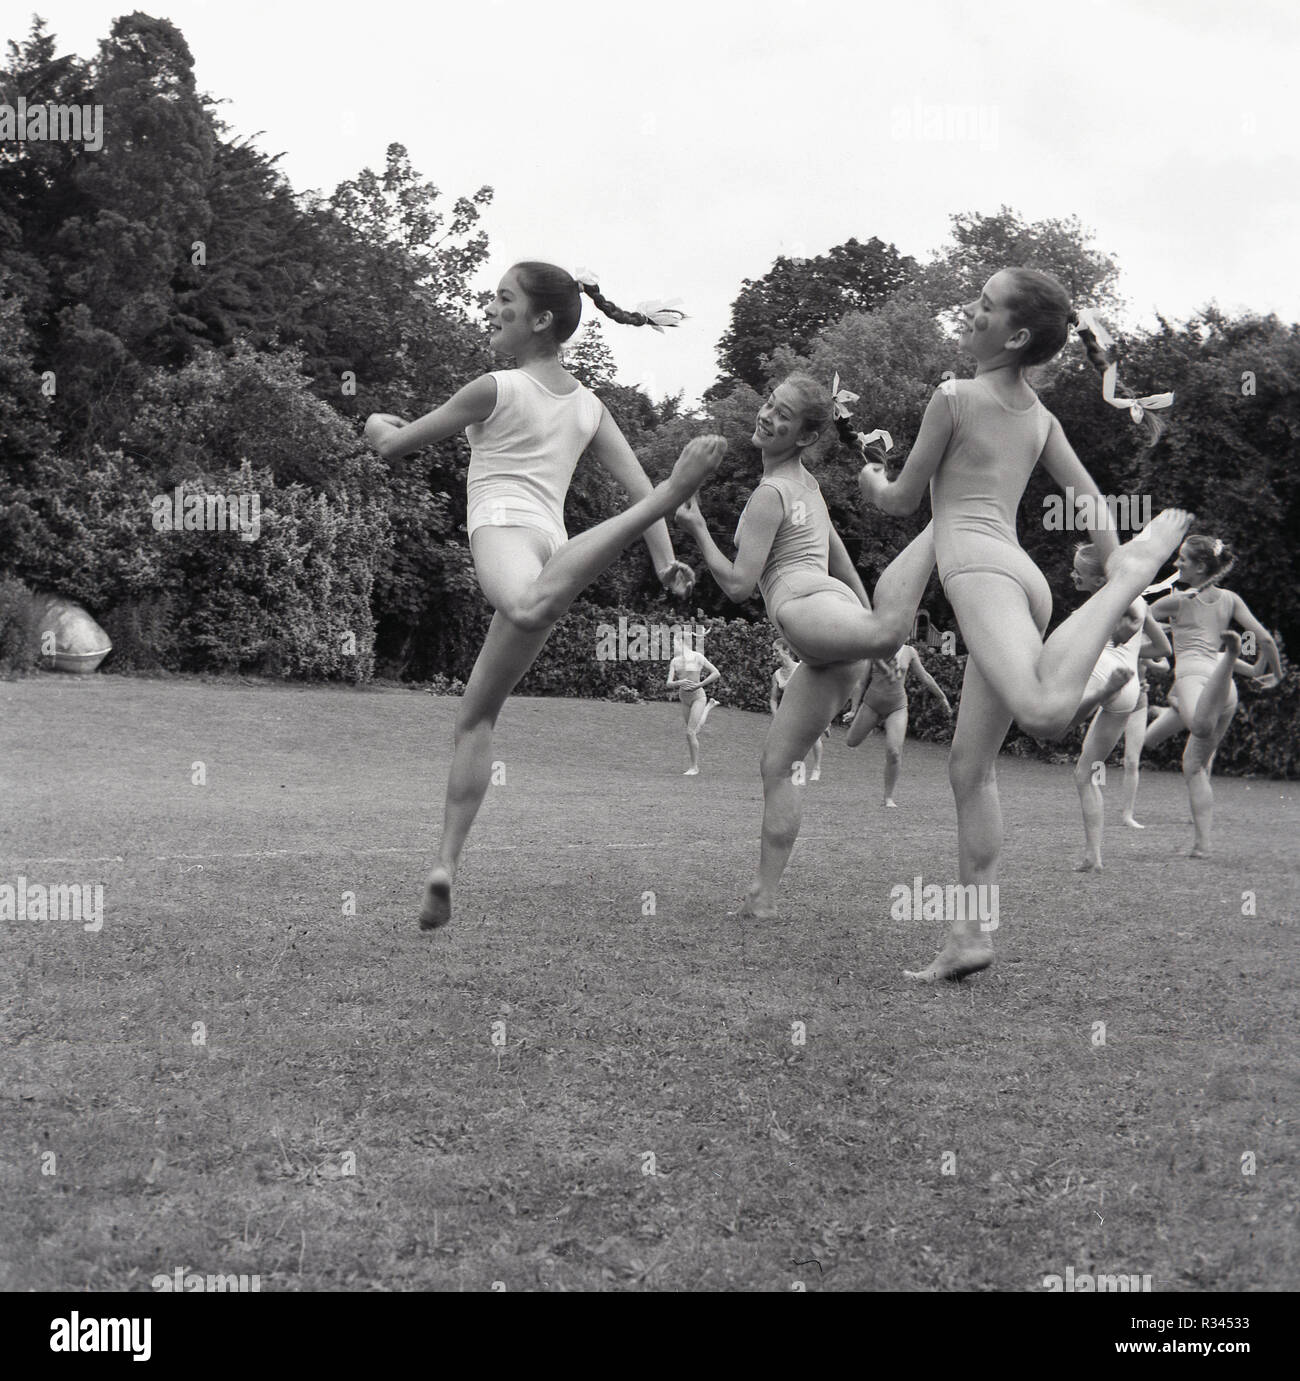 1967, tring arts festival, young female ballet dancers from the Arts Educational School performing together outside in a grass field. Founded as the sister school of the London school, it is now know as the Tring Park School fo the Performing Arts, a specialist English boarding school for gifted young people in dance, music and theatre. - Stock Image